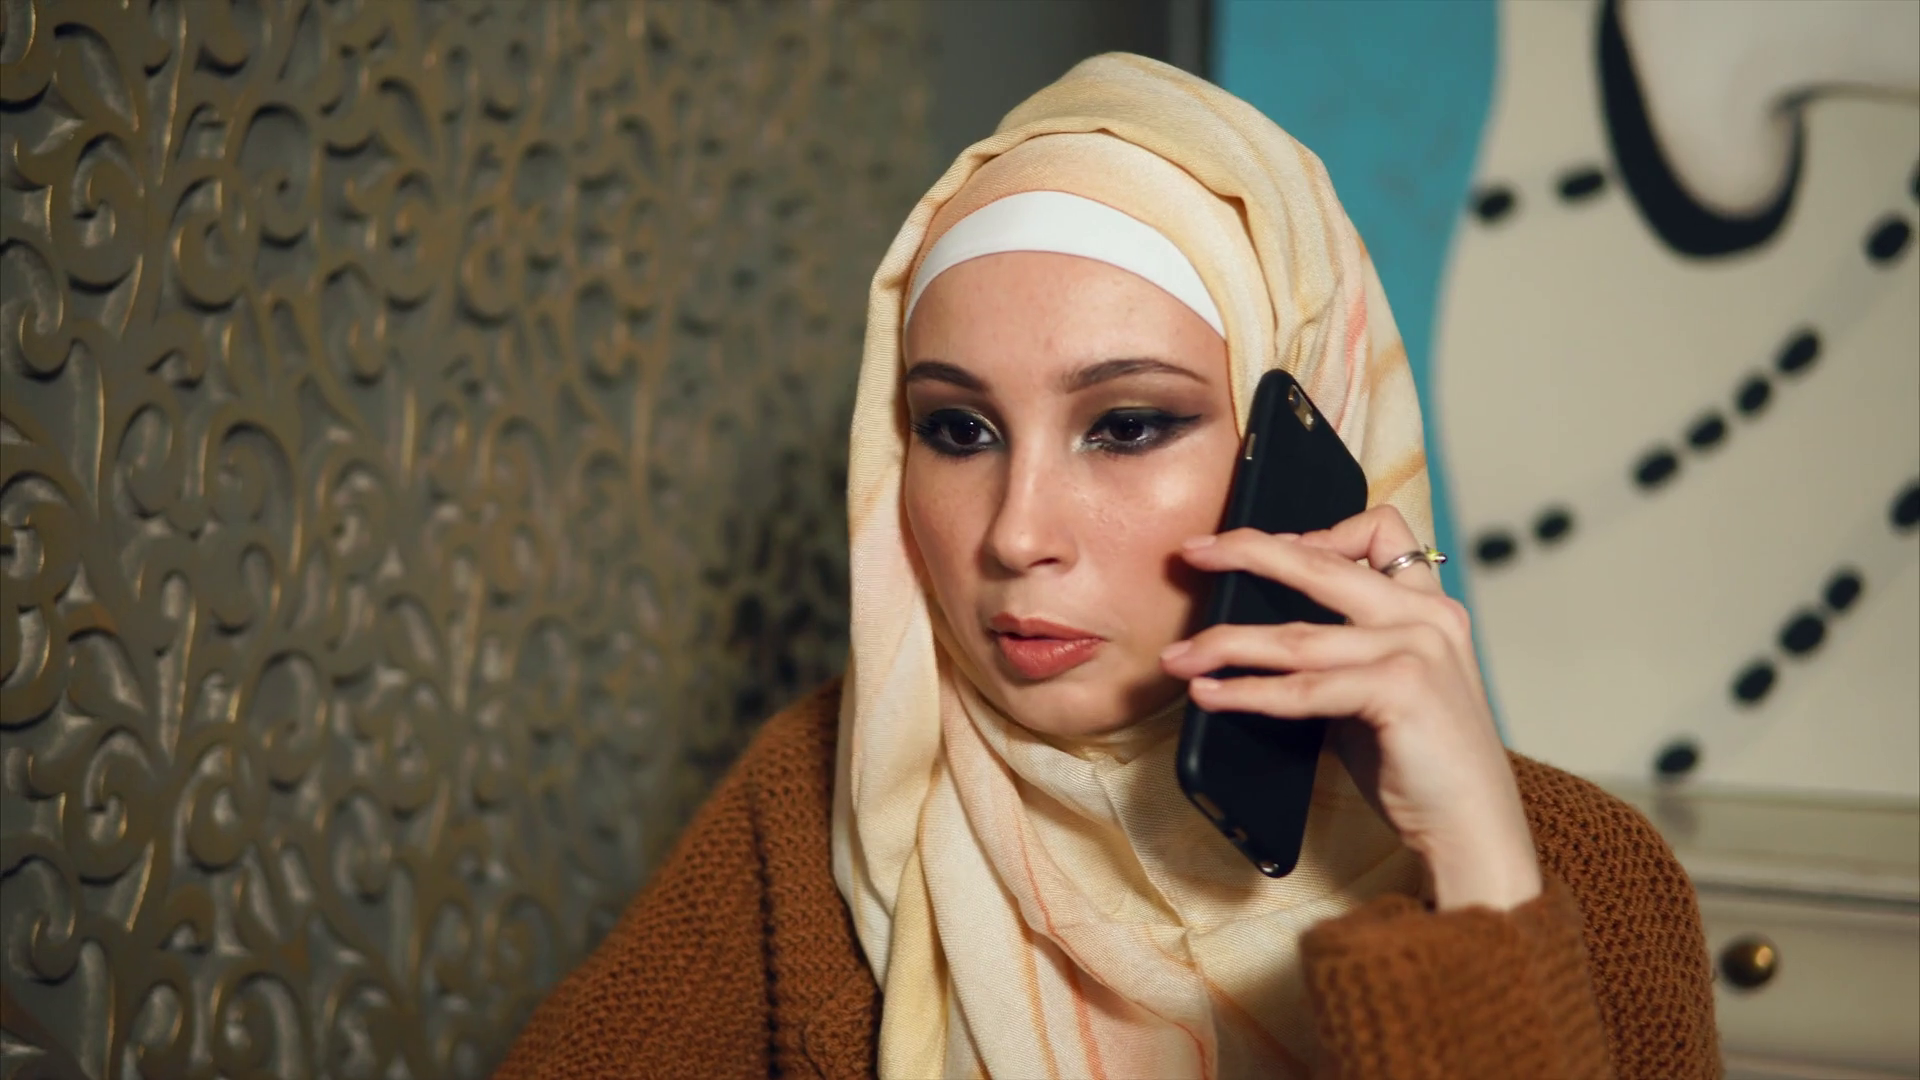 Young Muslim Woman In Headscarf Having A Business Talk - Girl , HD Wallpaper & Backgrounds